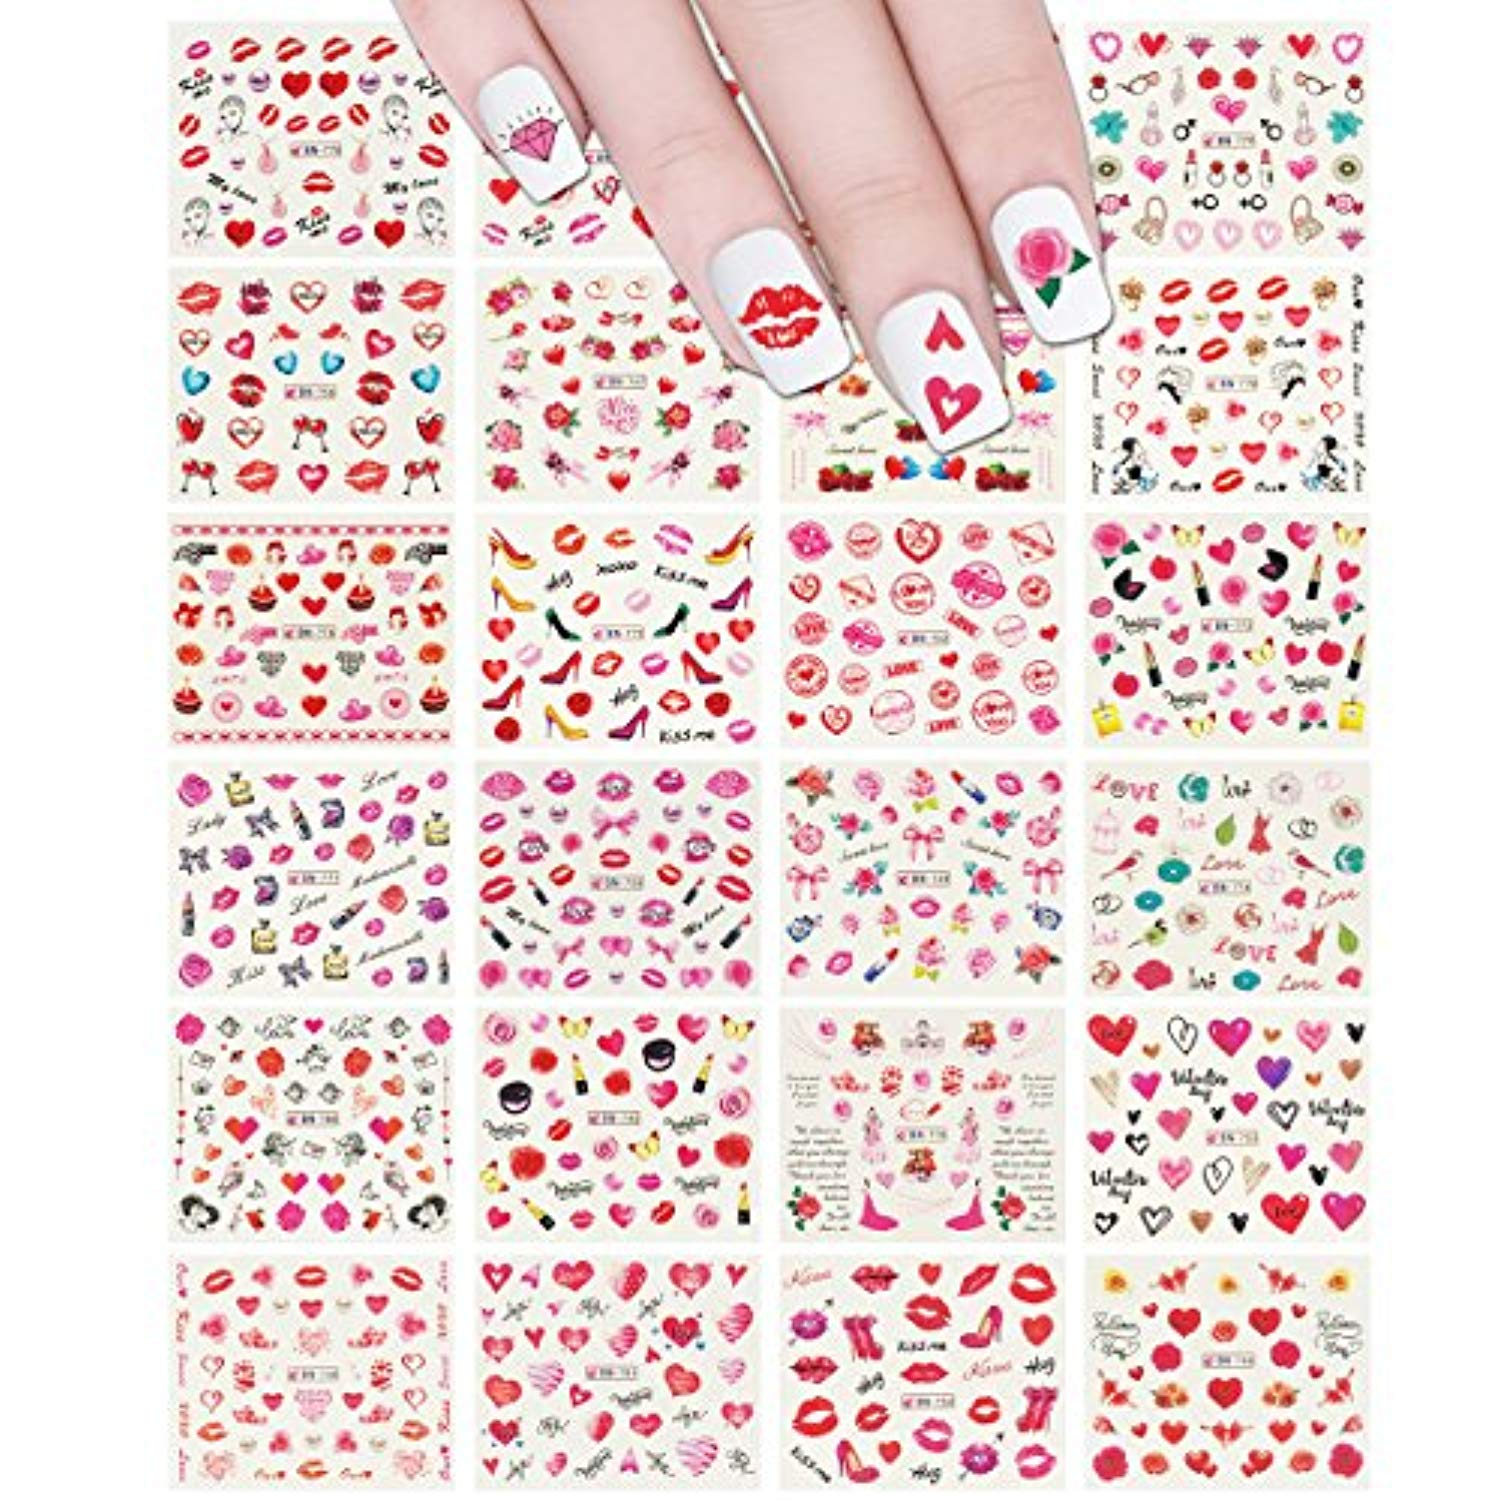 Valentine Nail Sticker - Red Flowers & Heart (24 sheets)